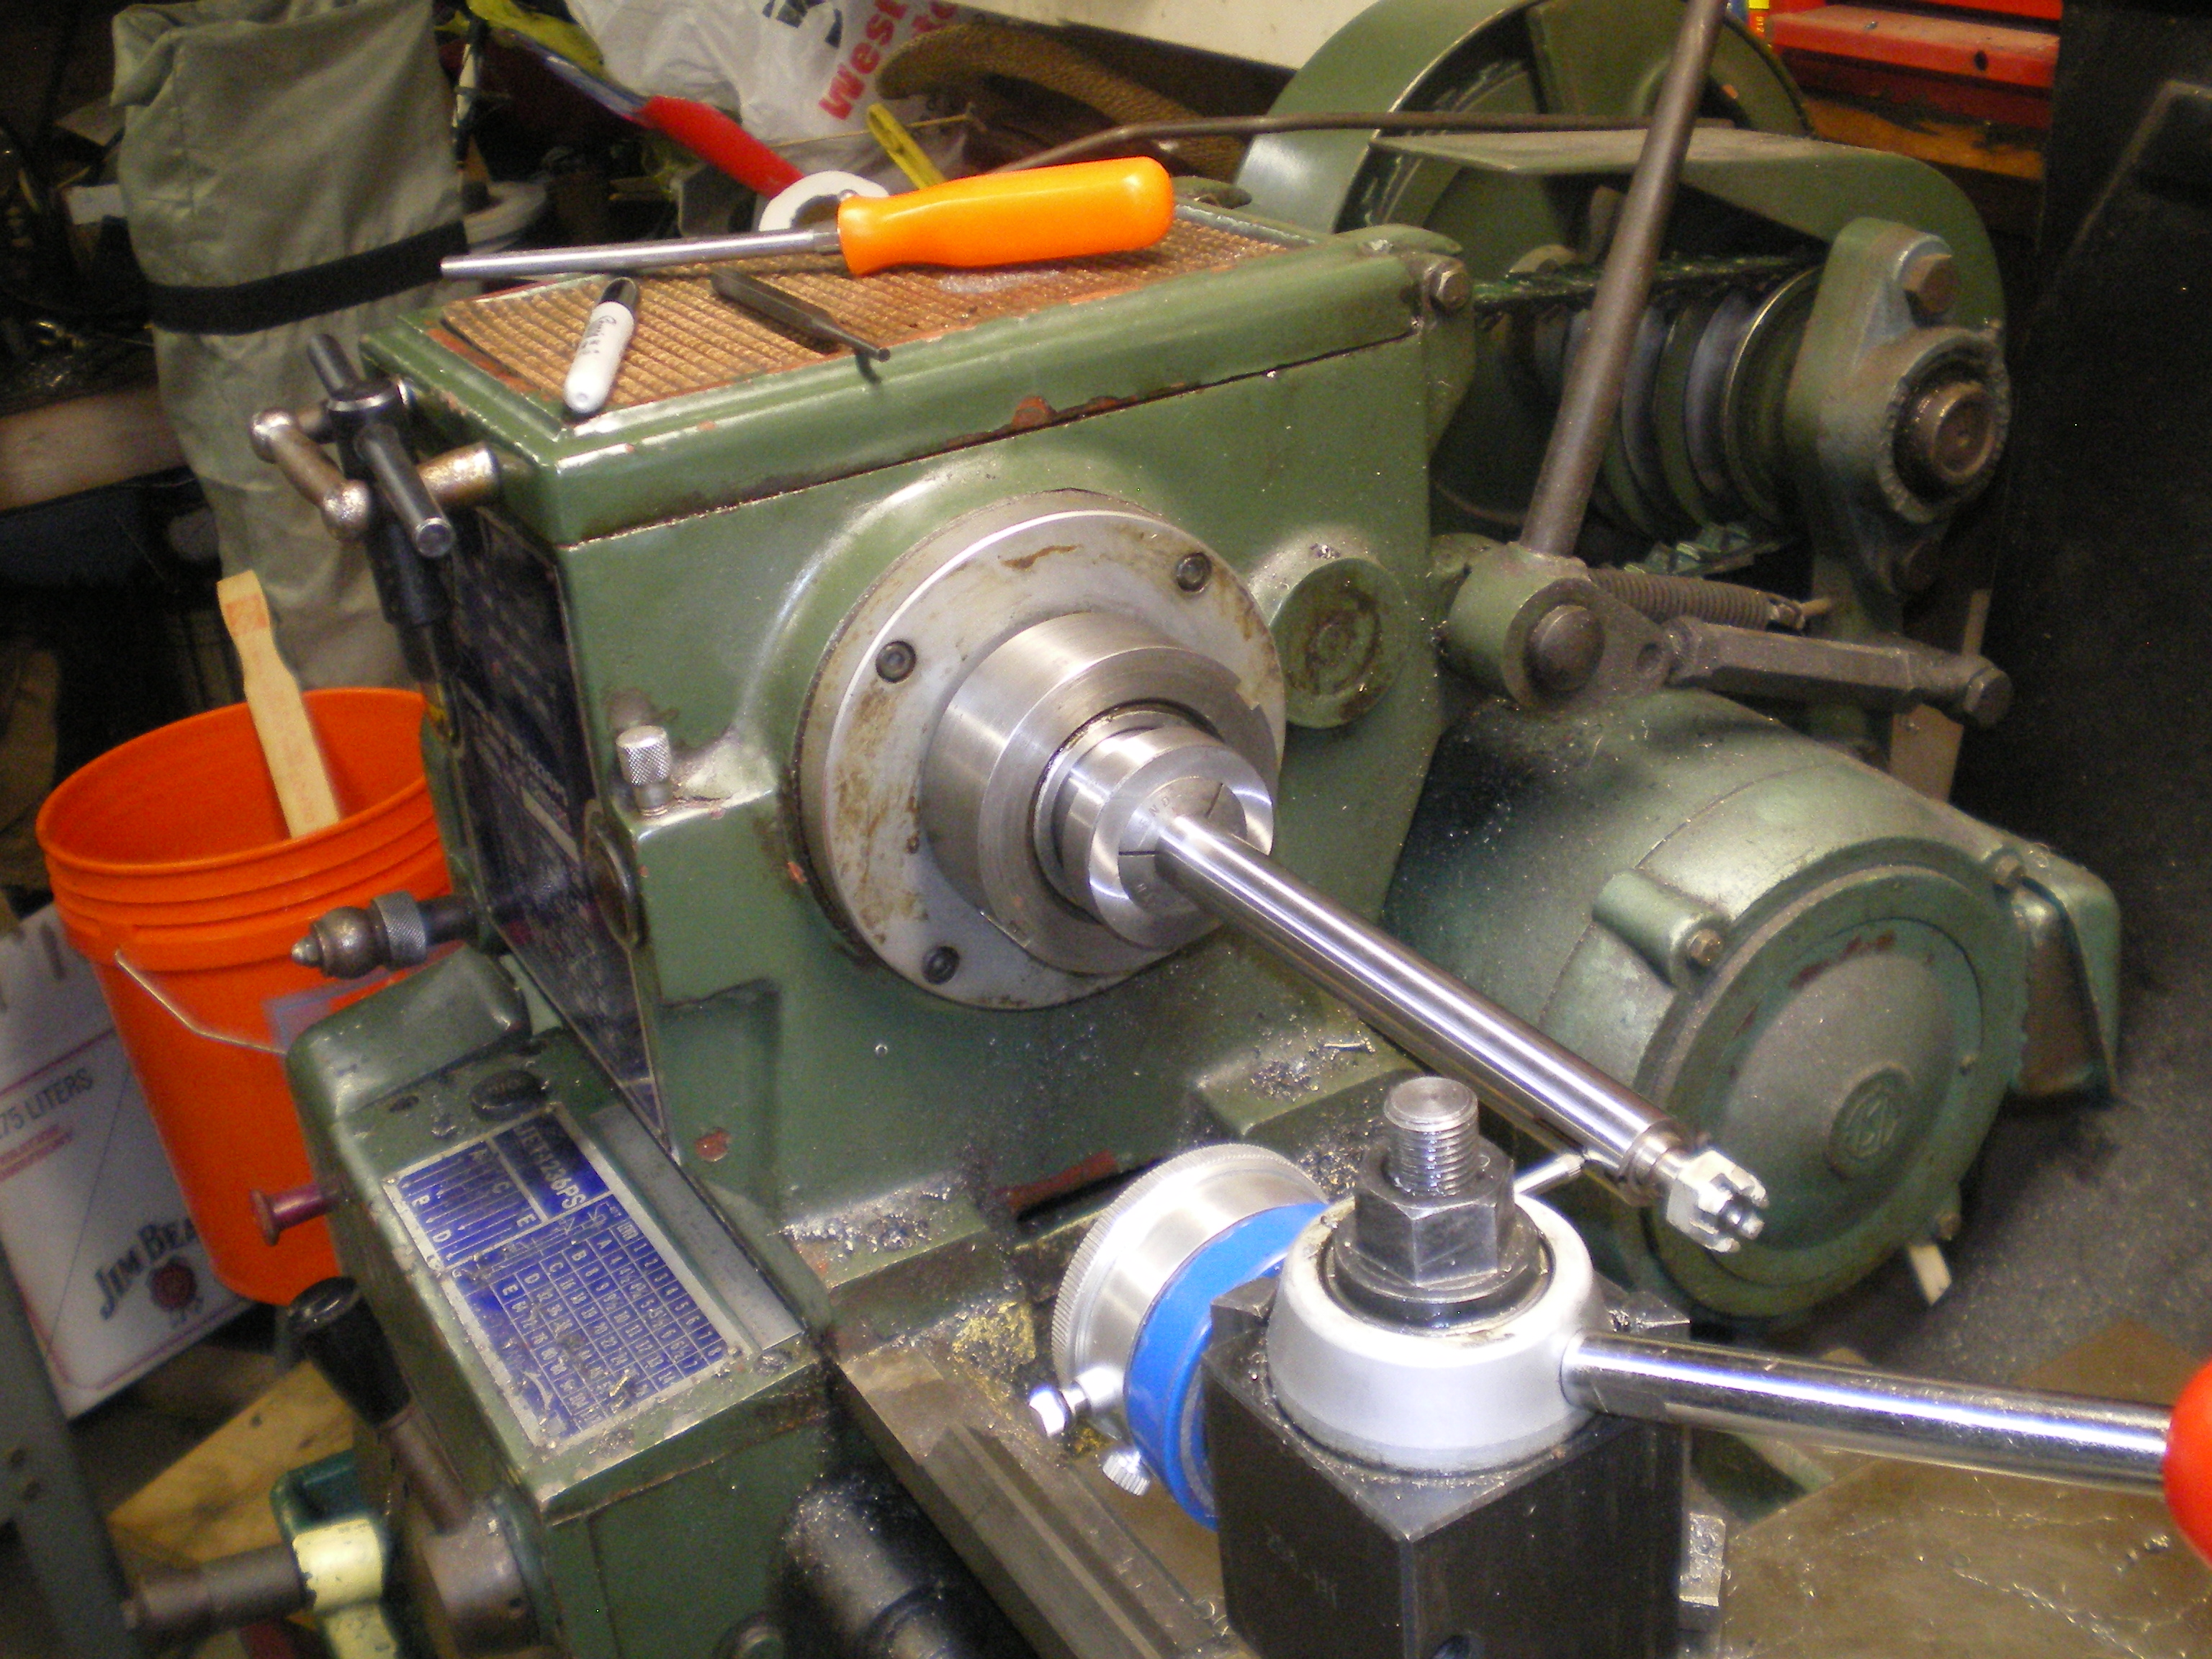 machinery in use South Bend Lathe Motor Wiring Diagram drawbar spacer drawbar spacer drawbar spacer drawbar spacer Engine Lathe Parts Diagram